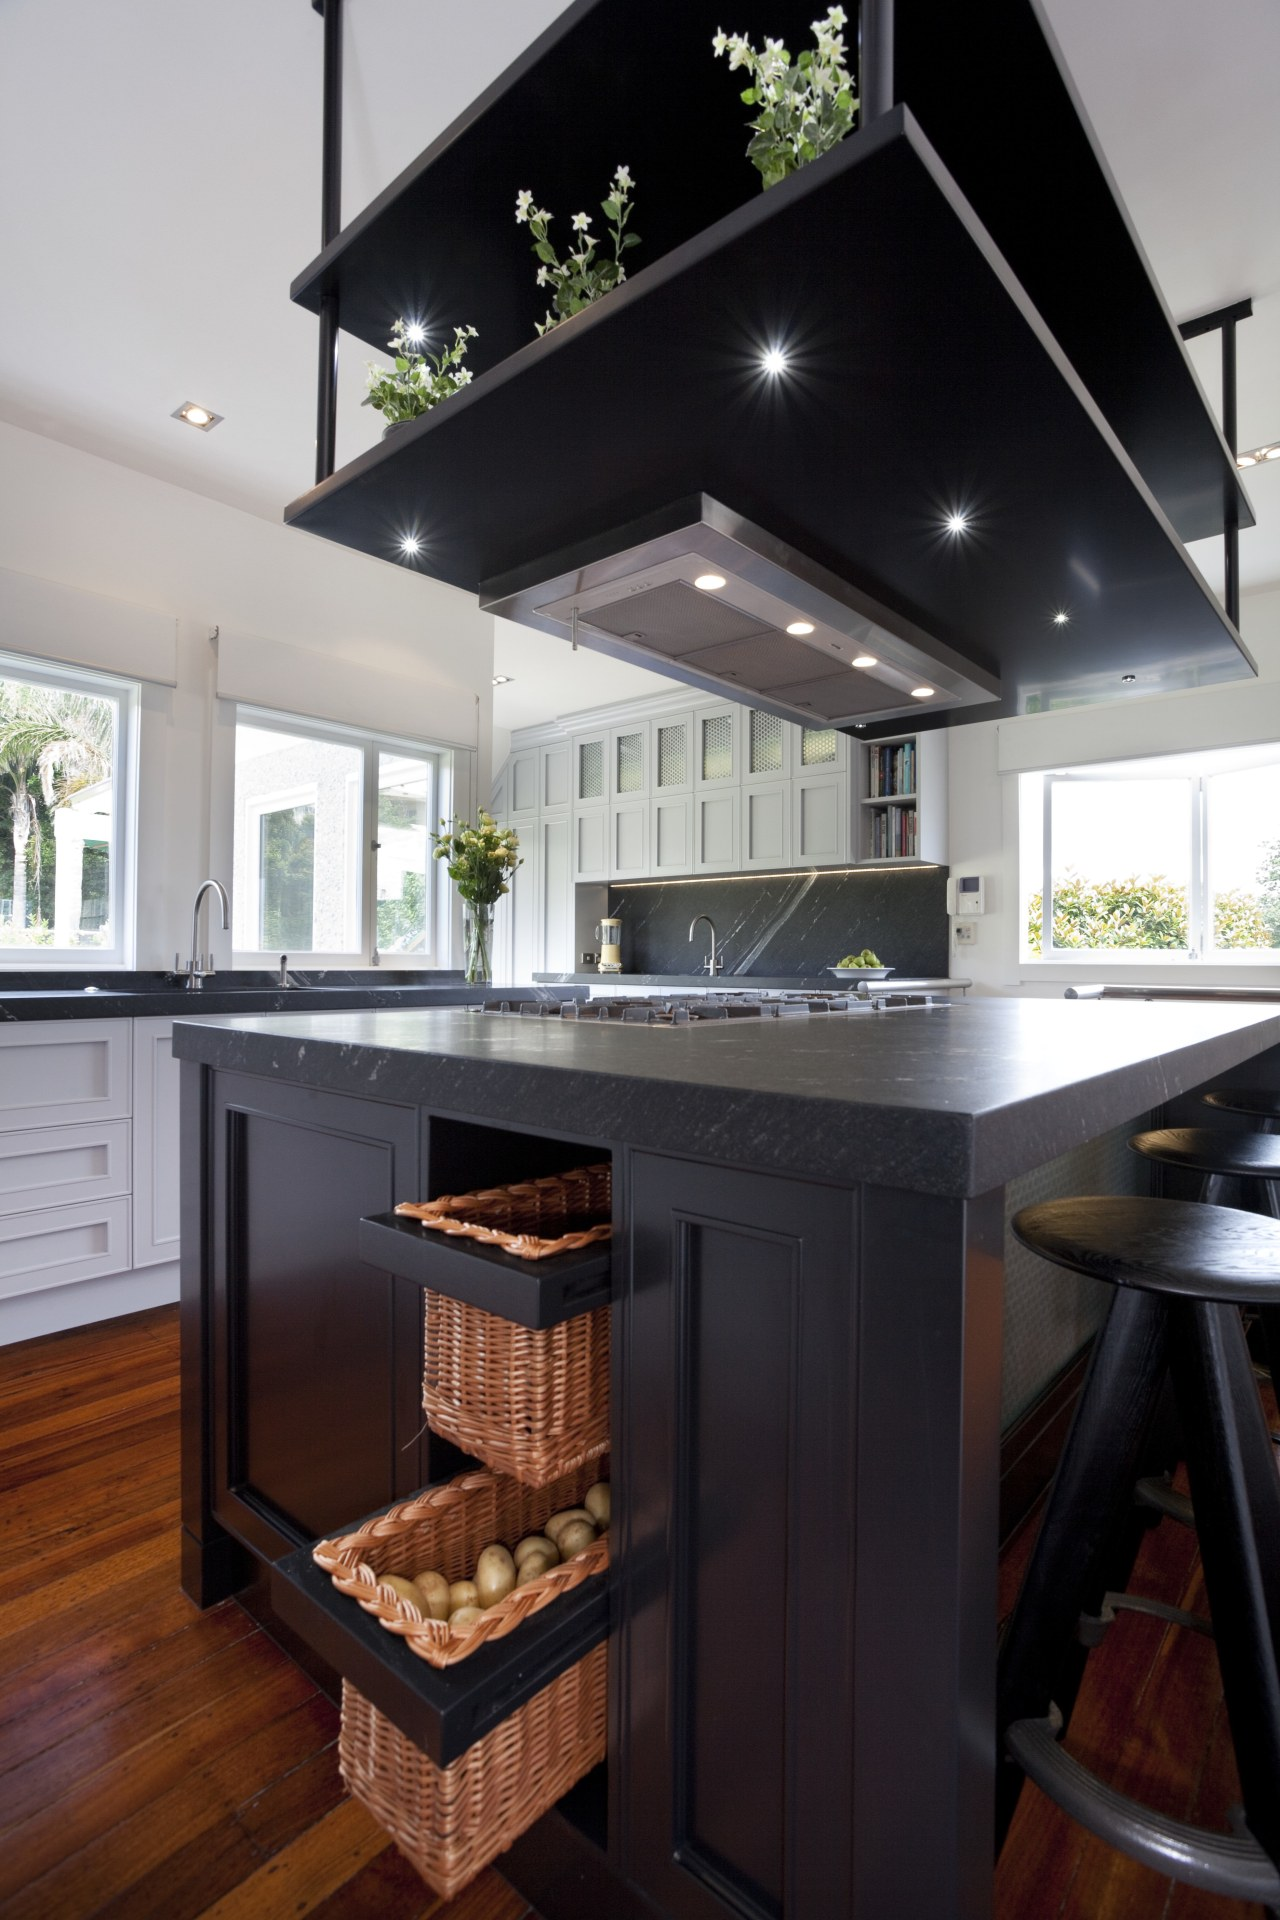 Dark stained central island, powerpack above on tiered countertop, interior design, kitchen, black